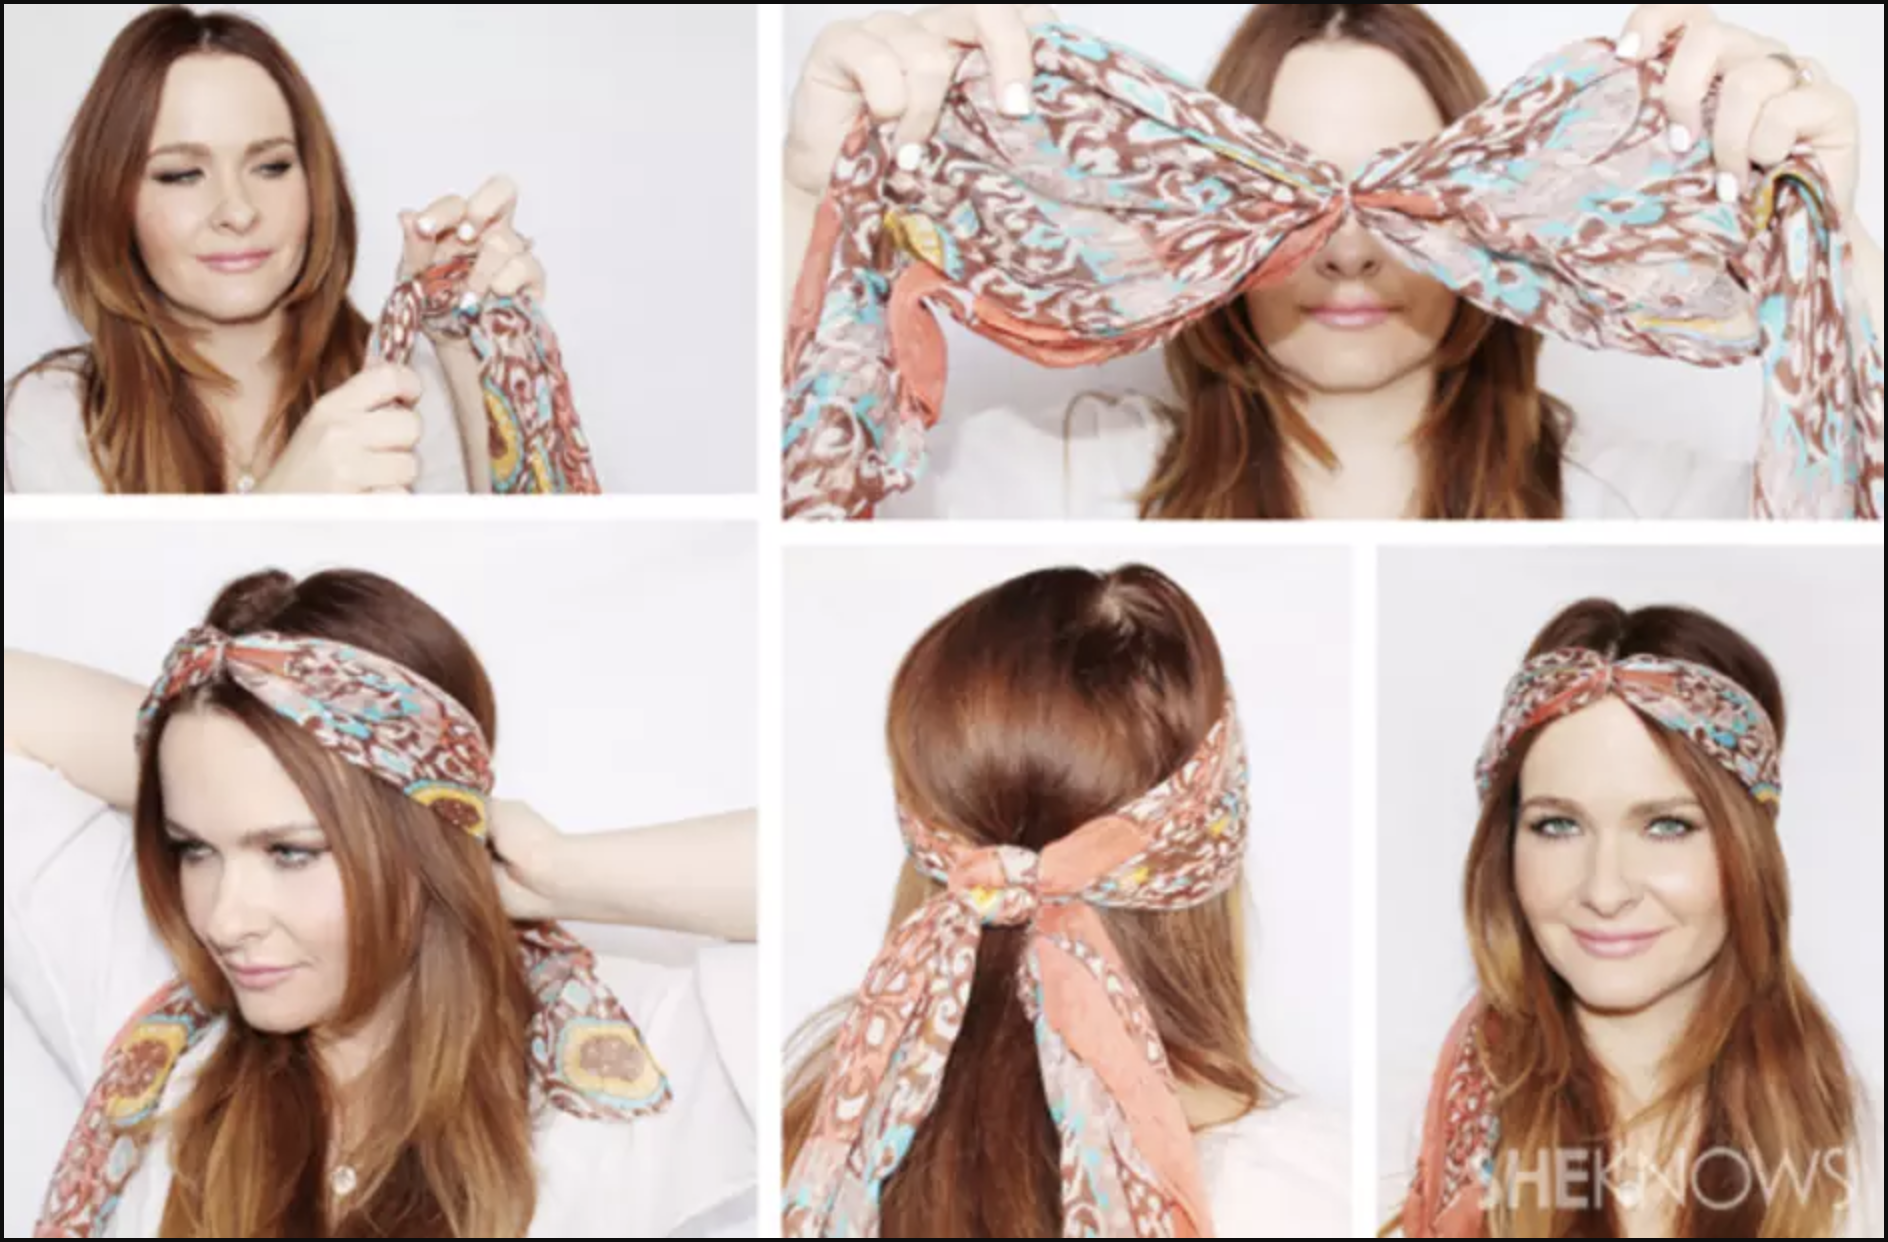 All you need for this style is a chic scarf and a rubber band! Just tie the rubber band in the middle of the headscarf and you're on your way to one boho look!